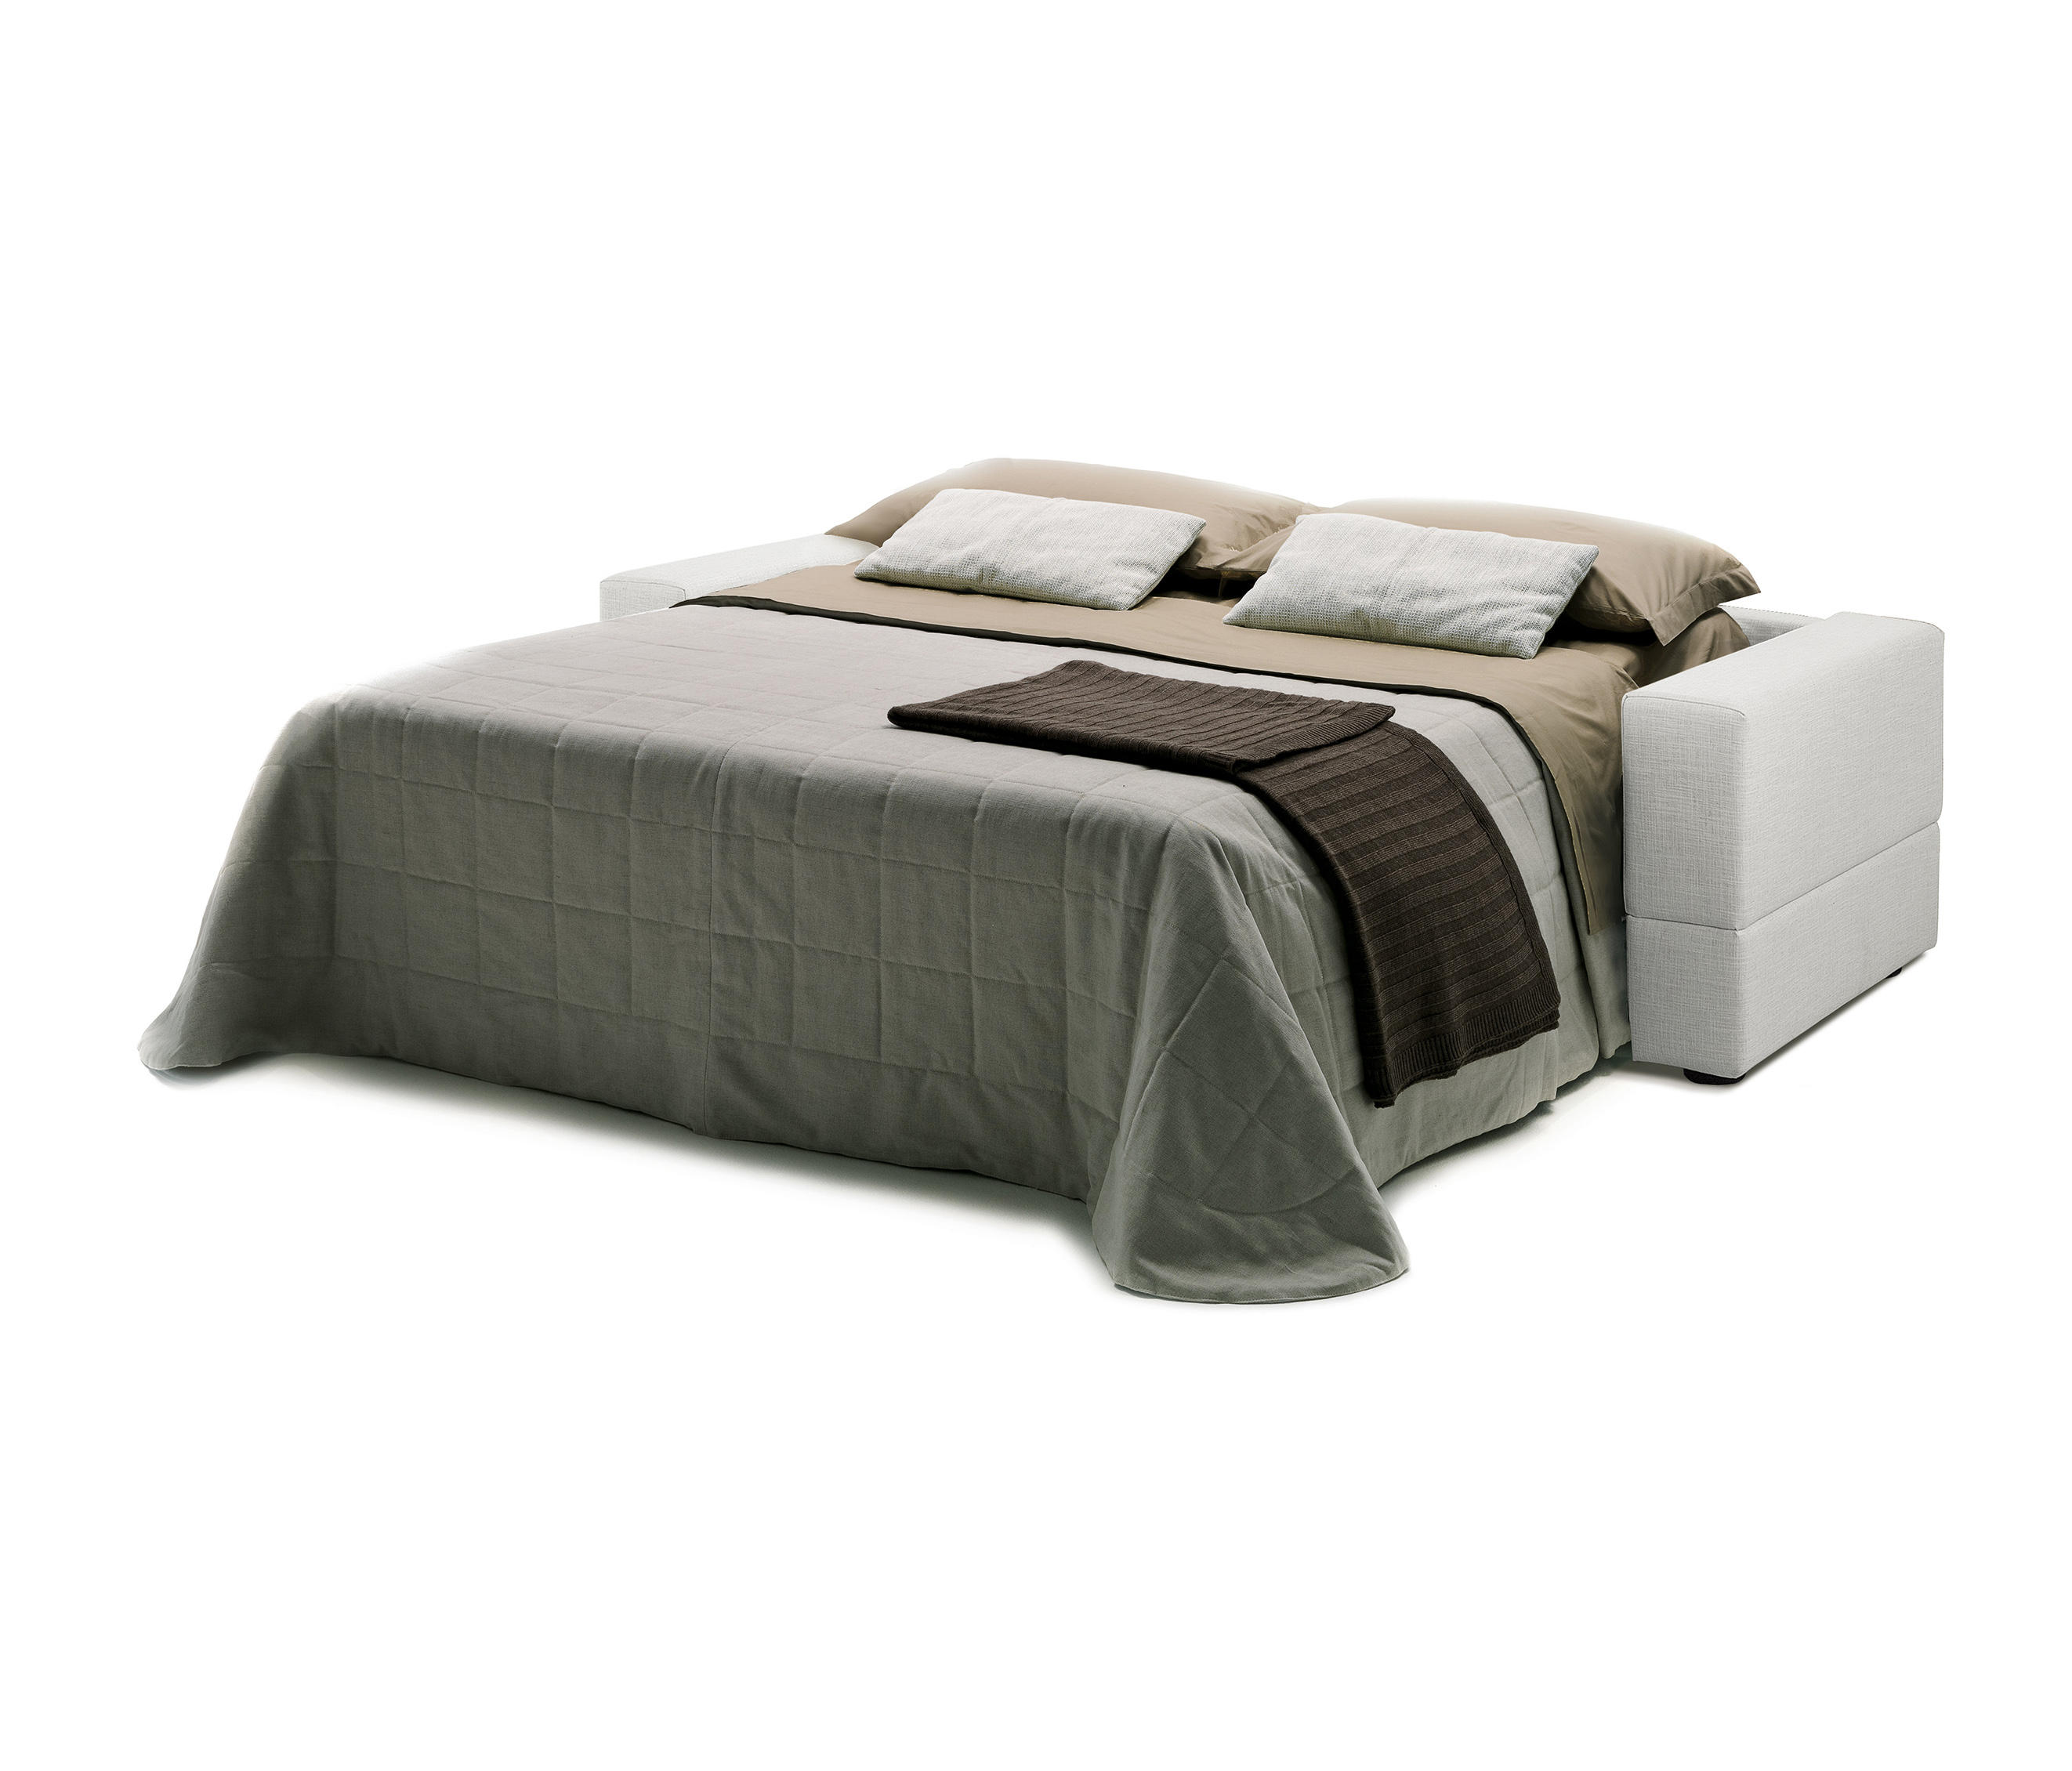 brian sofa beds from milano bedding architonic. Black Bedroom Furniture Sets. Home Design Ideas